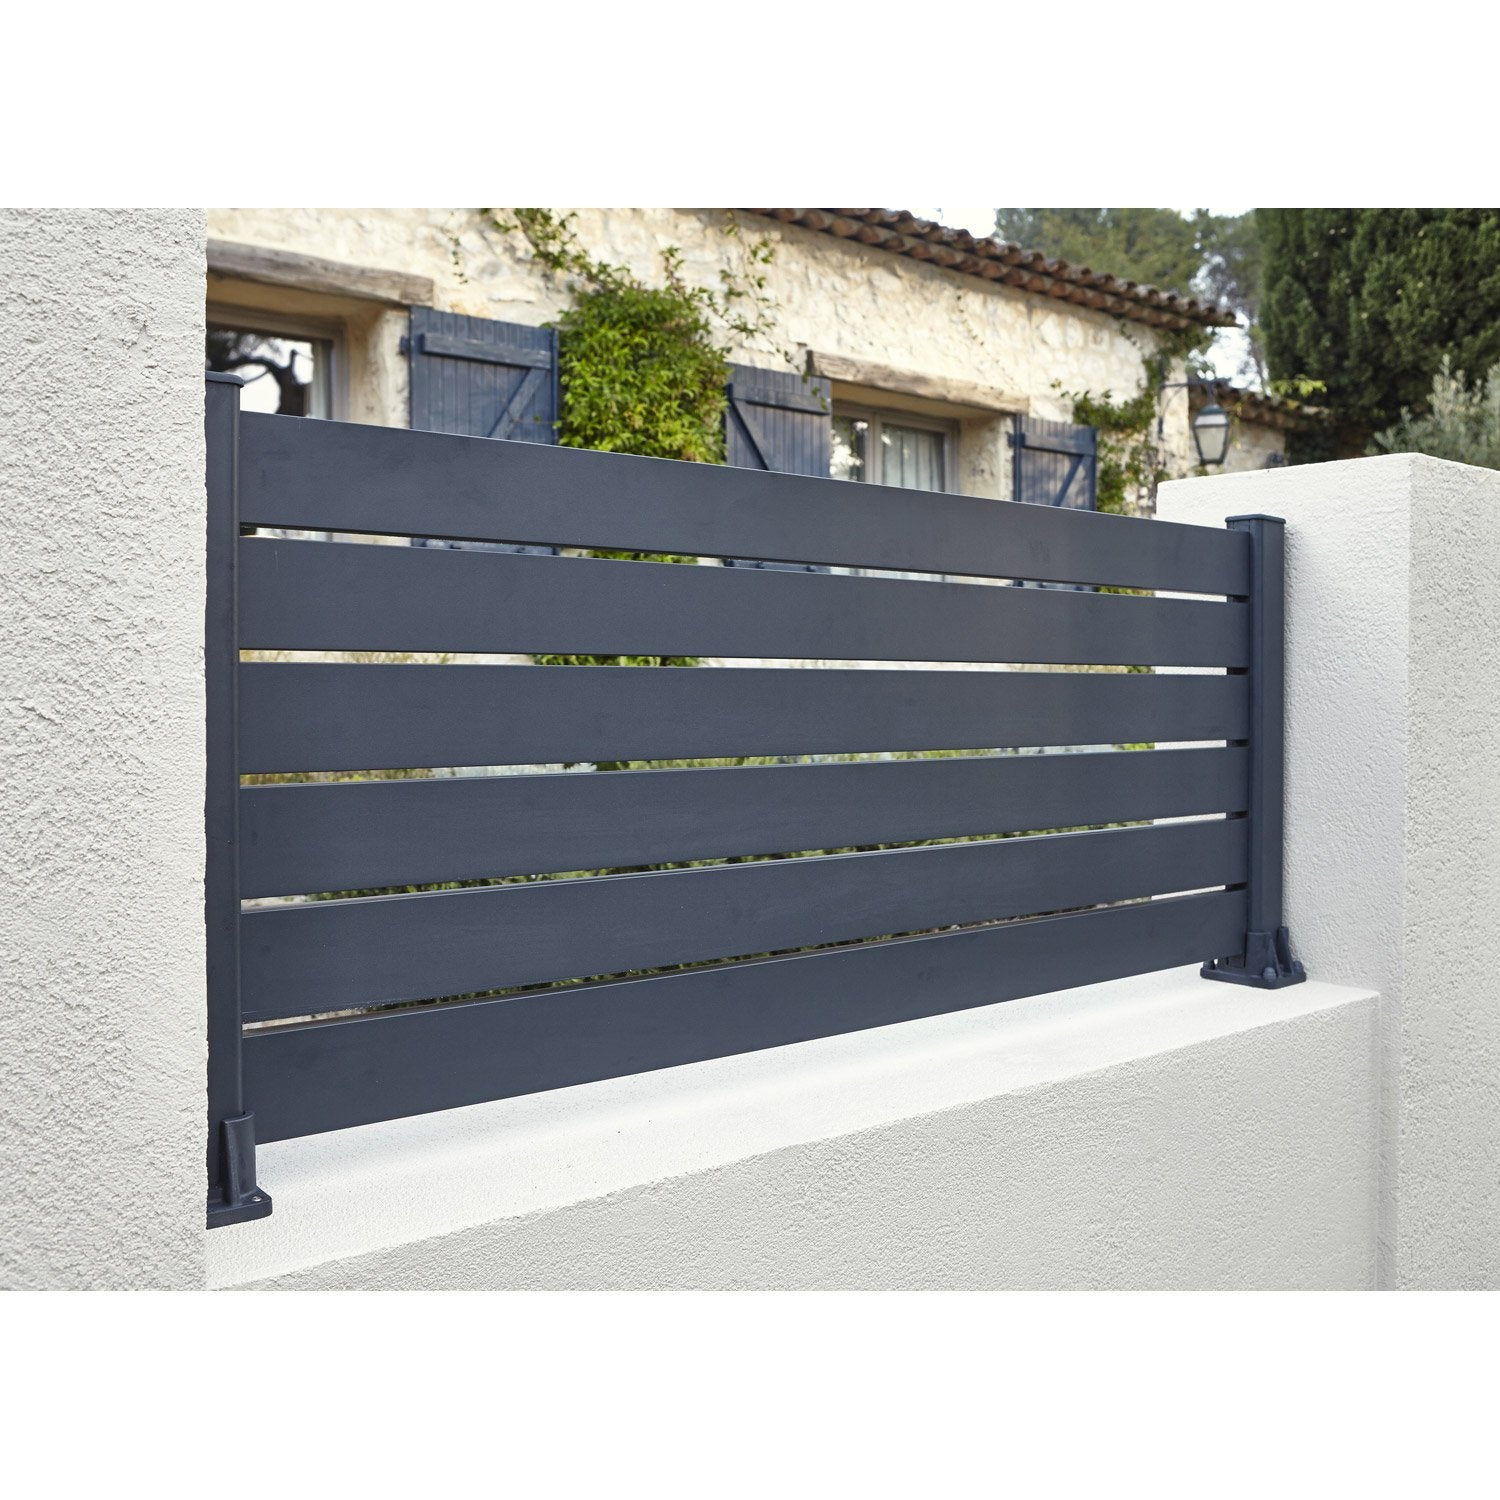 Lame de cl ture aluminium klos 39 up naterial gris zingu h for Cloture aluminium noir